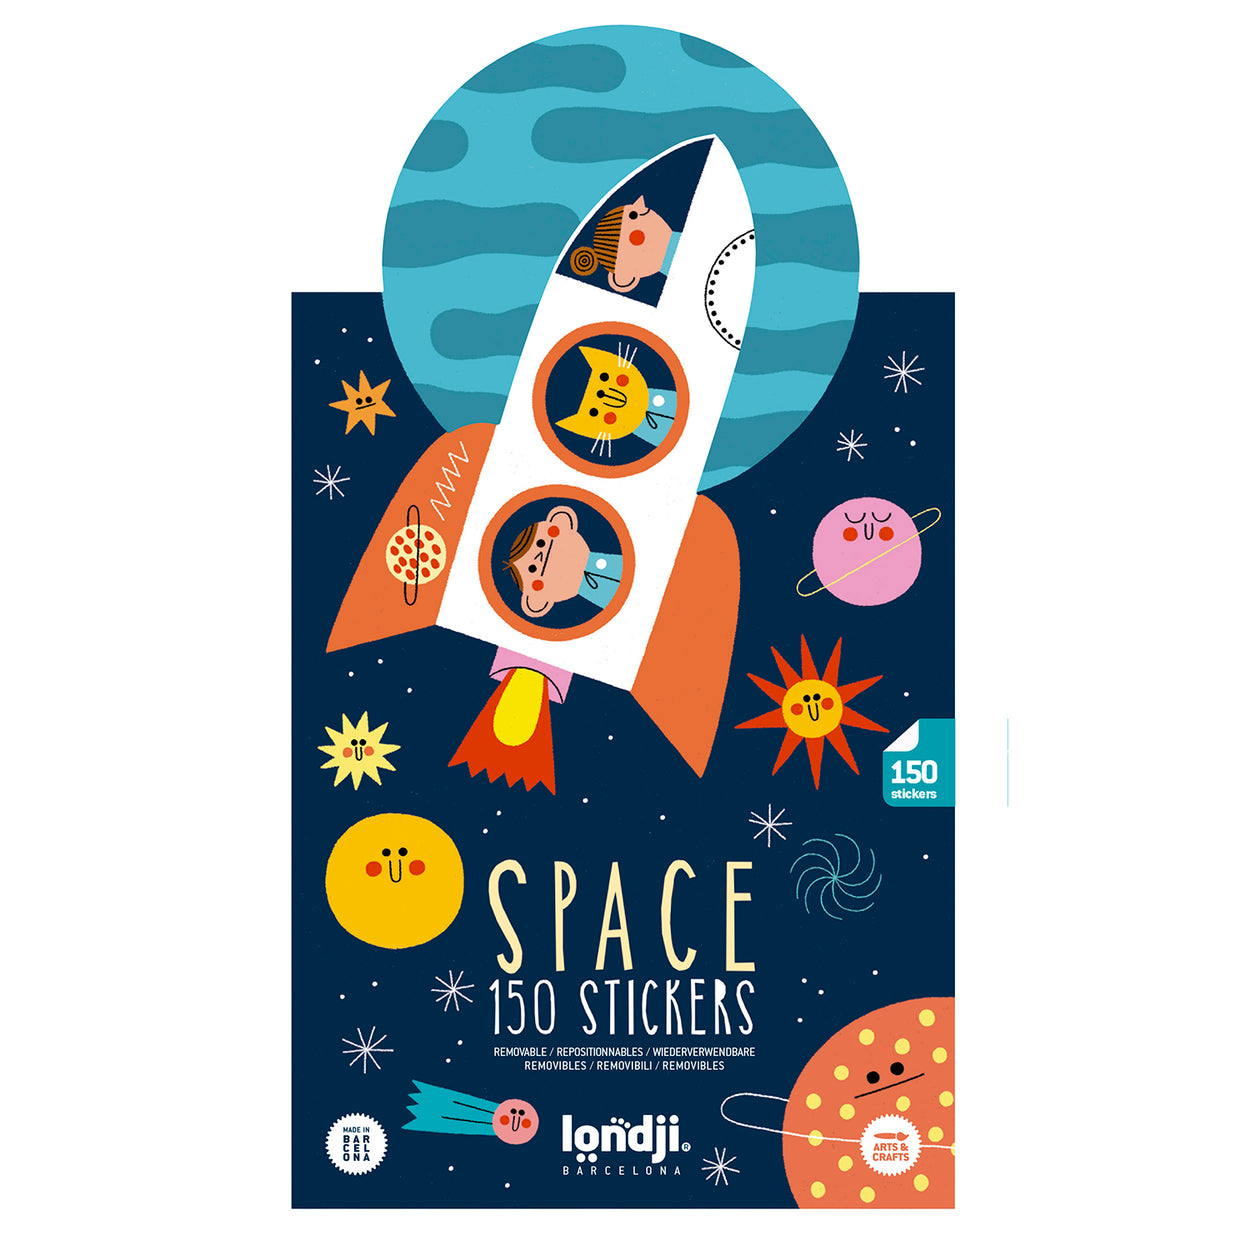 Space themed stickers for kids